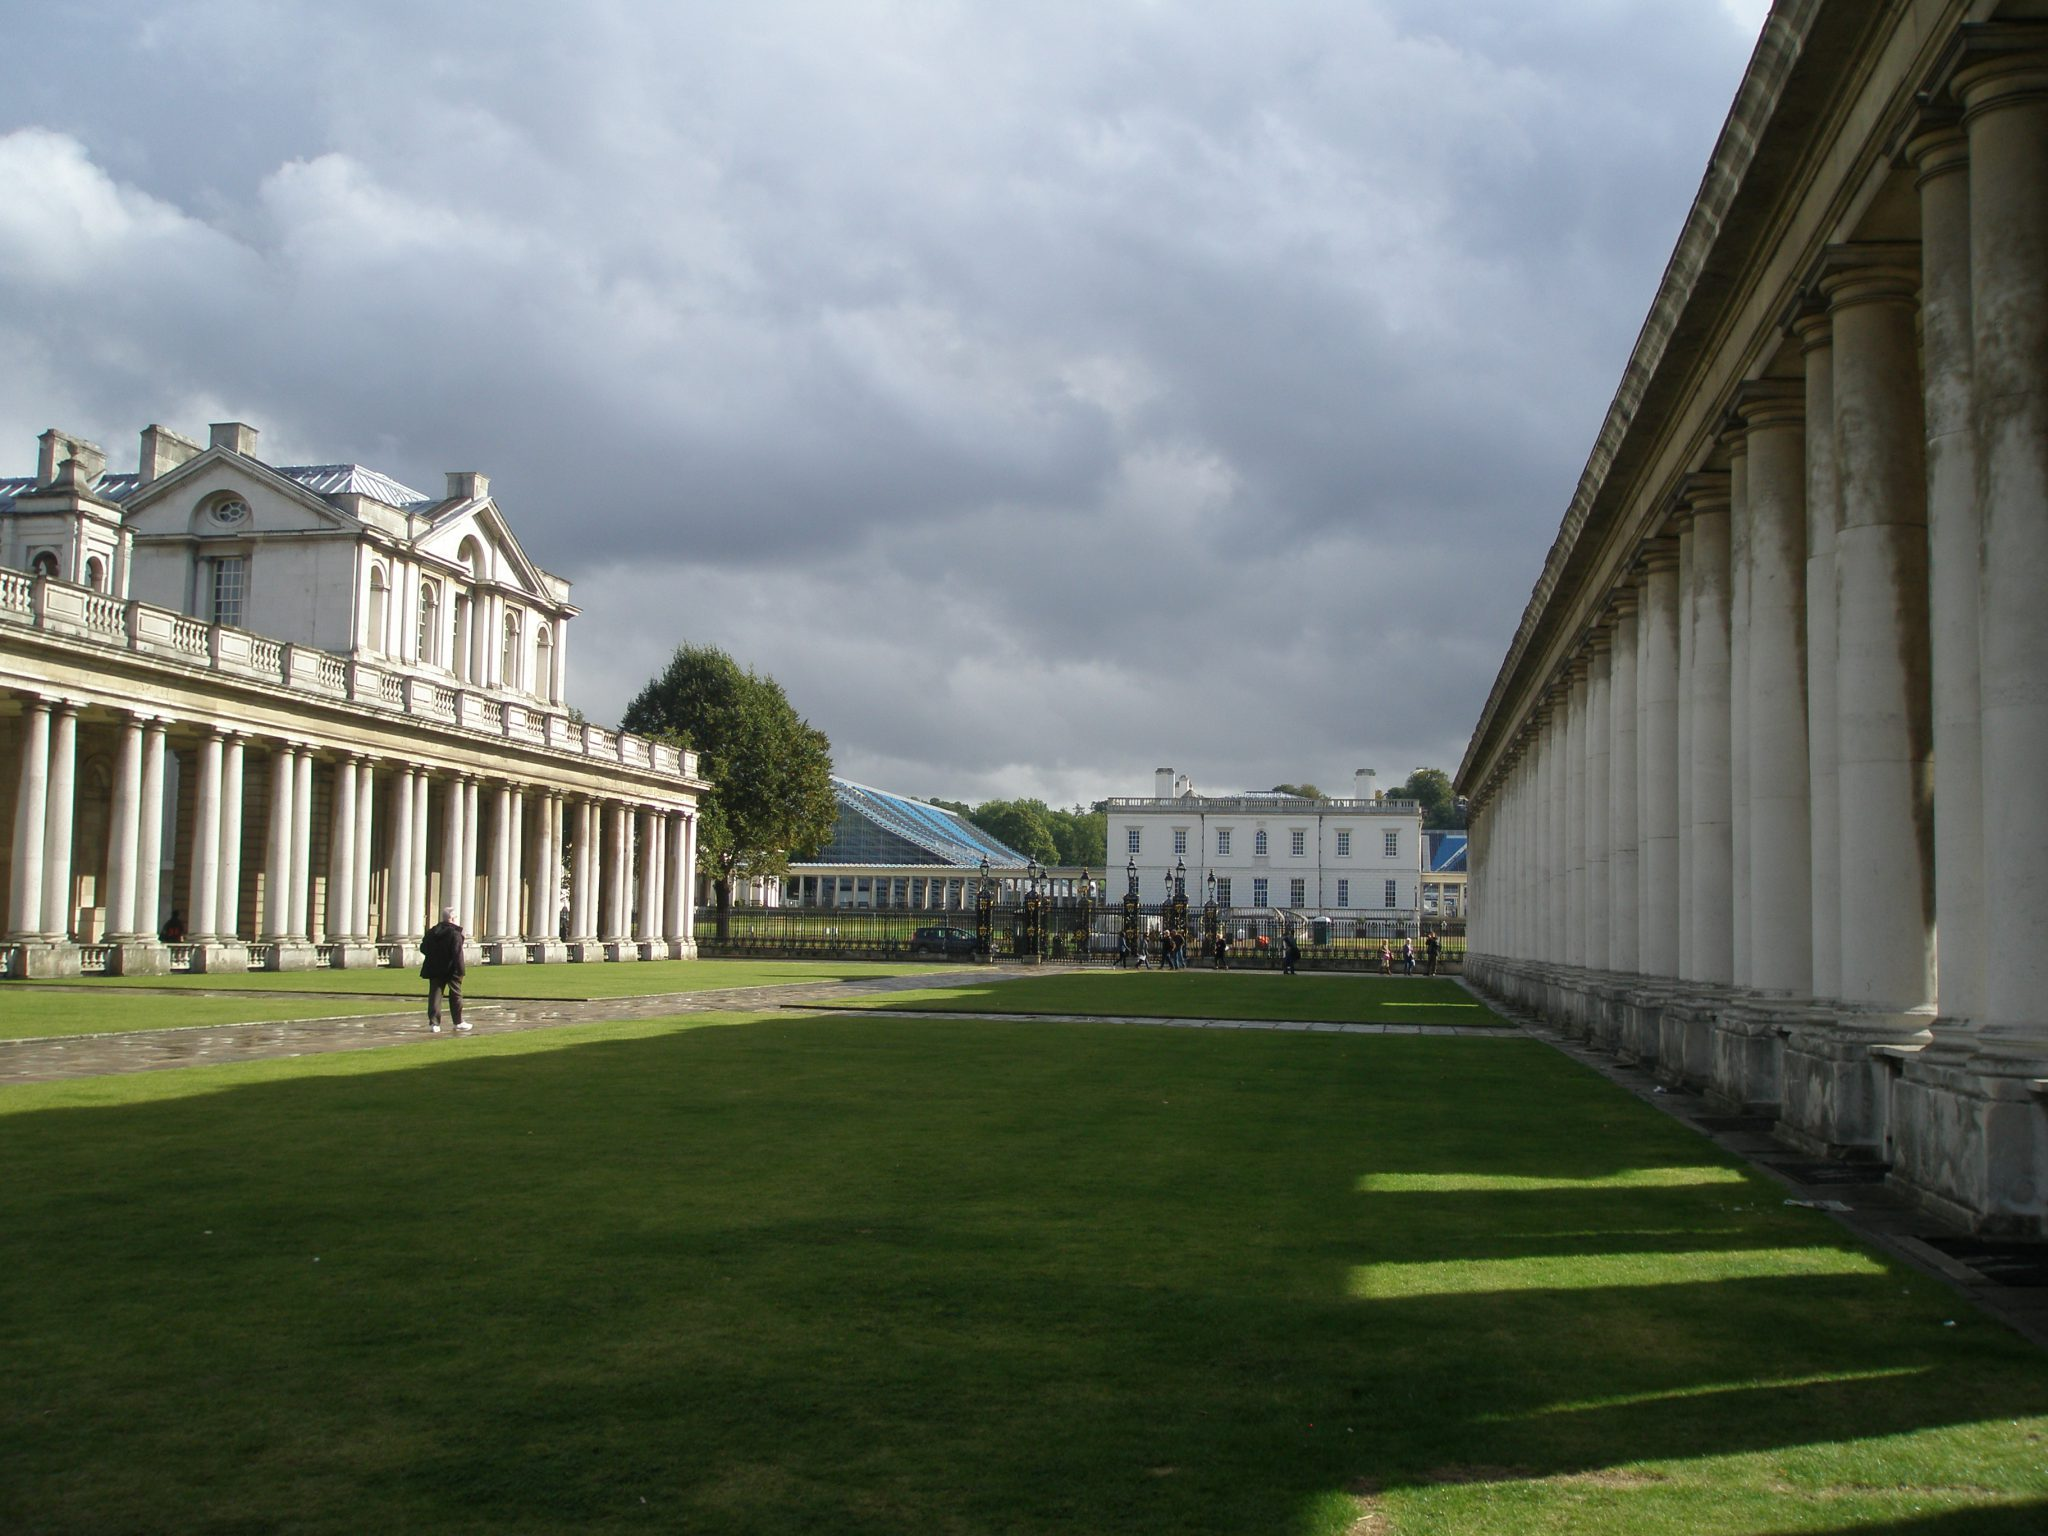 On the left: Colonnade of Queen Mary Court. On the right: Colonnade of King William Court. Center: The Queen's House, designed in 1616 by Inigo Jones for Anne of Denmark, Consort of King James I. Behind The Queen's House: temporary grandstands for the Olympics Equestrian Competitions